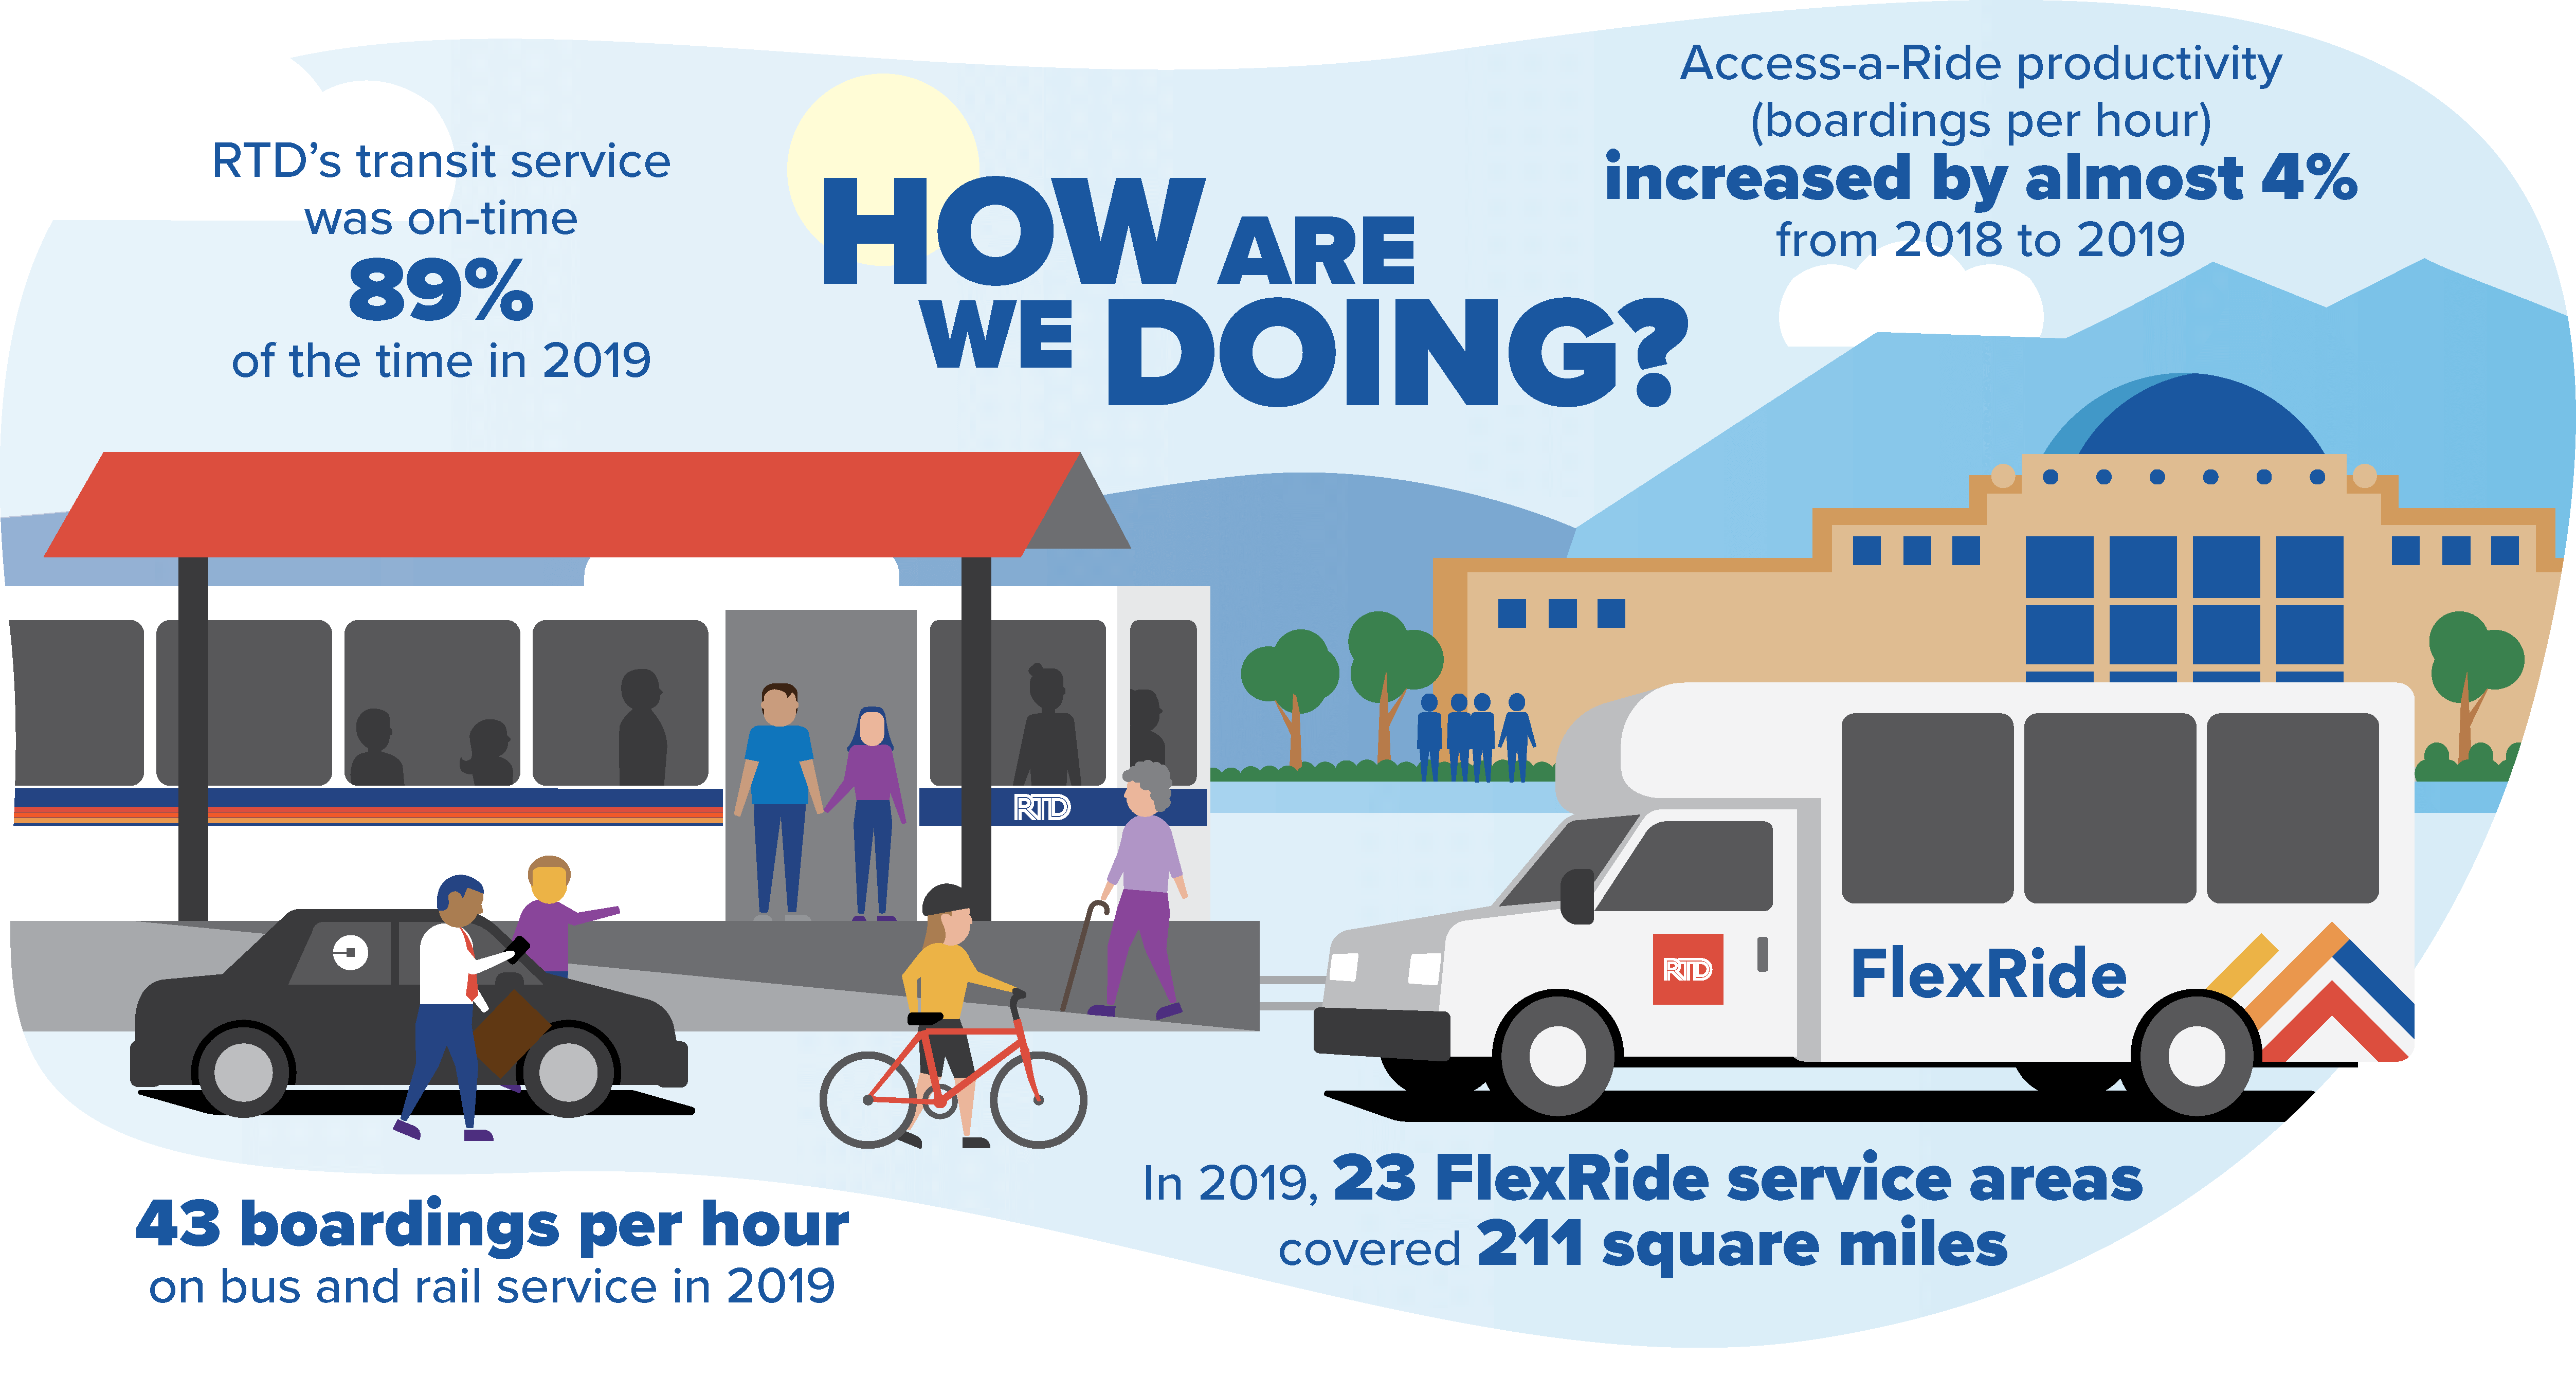 Infographic: How are we doing?  Access-a-ride boardings per hour productivity increased by almost 4% from 2018 to 2019. RTD's transit service was on time 89% of the time in 2019. 43 boardings per hour on bus and rail service in 2019. In 2019, 23 FlexRide service areas covered 211 square miles.